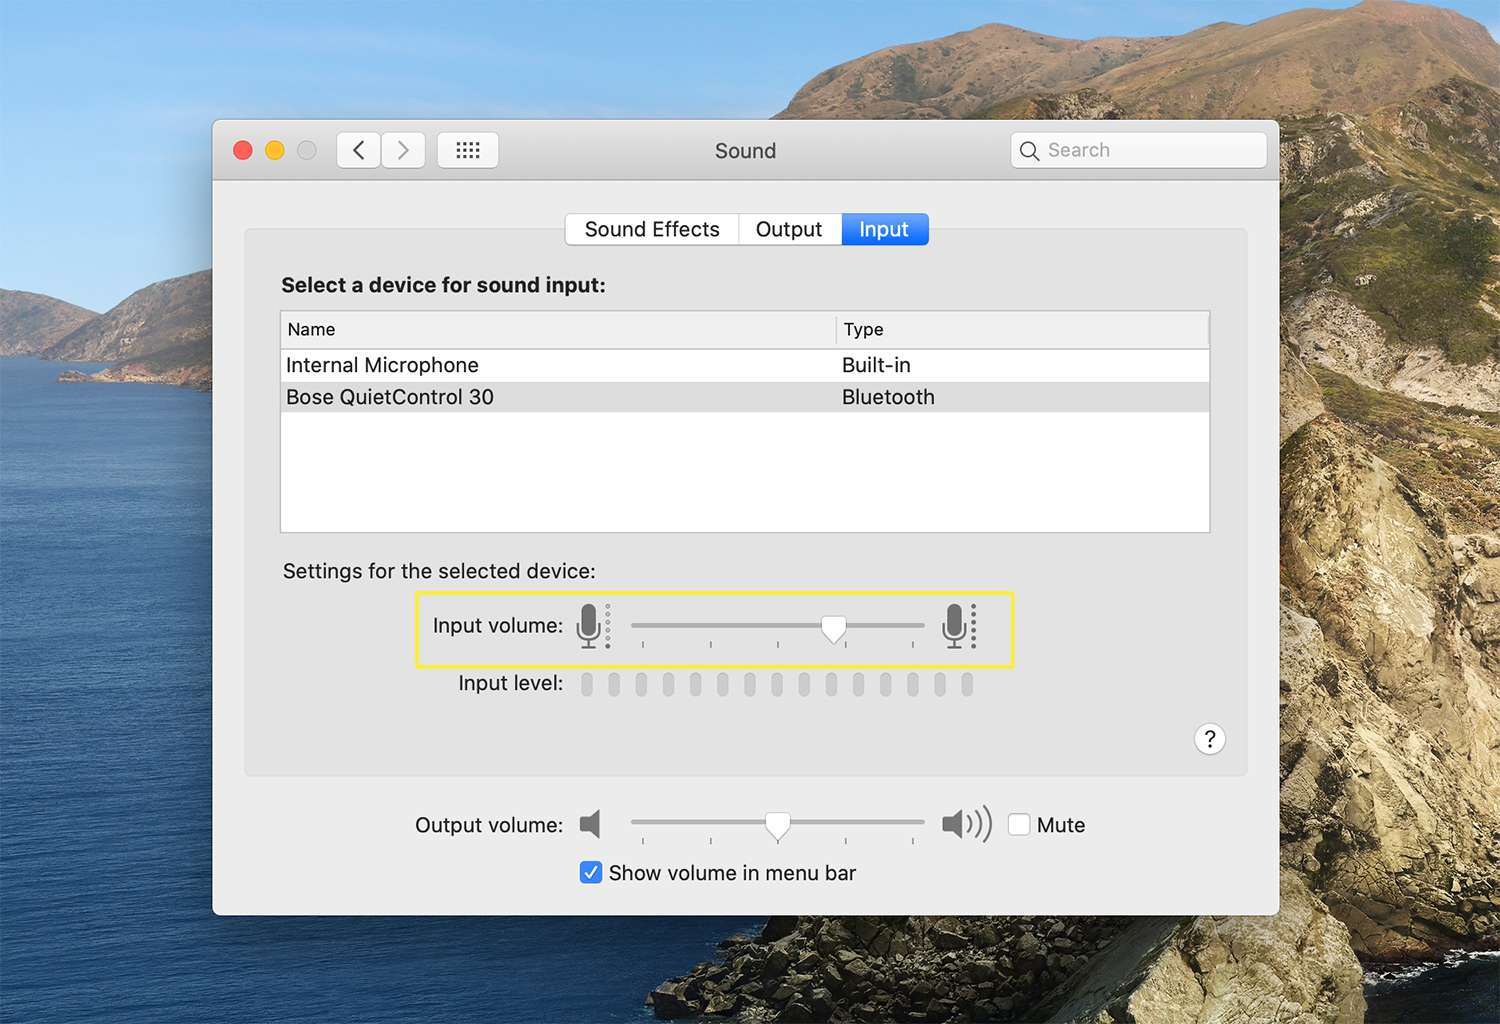 Input volume settings for sound devices on macOS